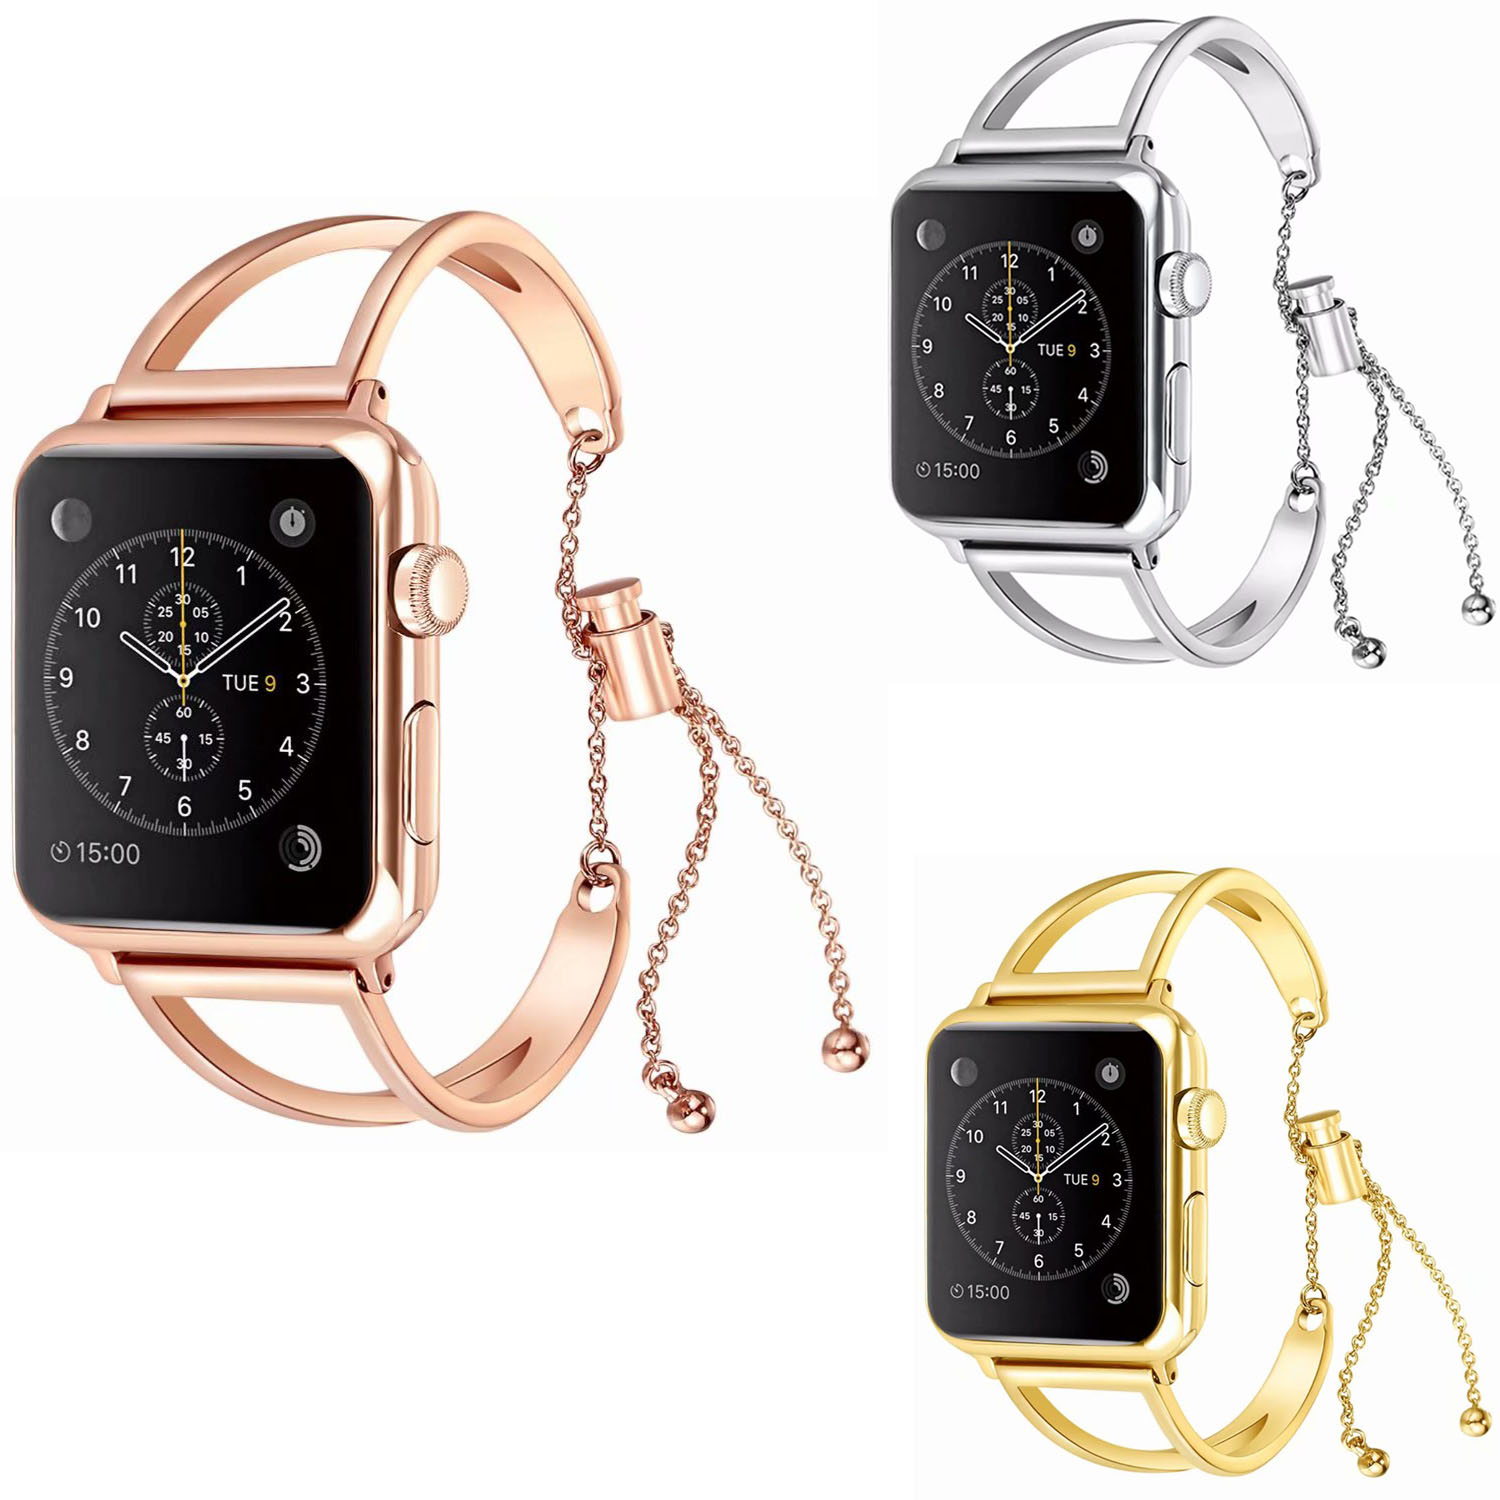 Women Watch Bracelet for Apple Watch Bands 38mm 42mm Adjustable Stainless Steel Strap with Pendant for iWatch Series 3 2 1Women Watch Bracelet for Apple Watch Bands 38mm 42mm Adjustable Stainless Steel Strap with Pendant for iWatch Series 3 2 1